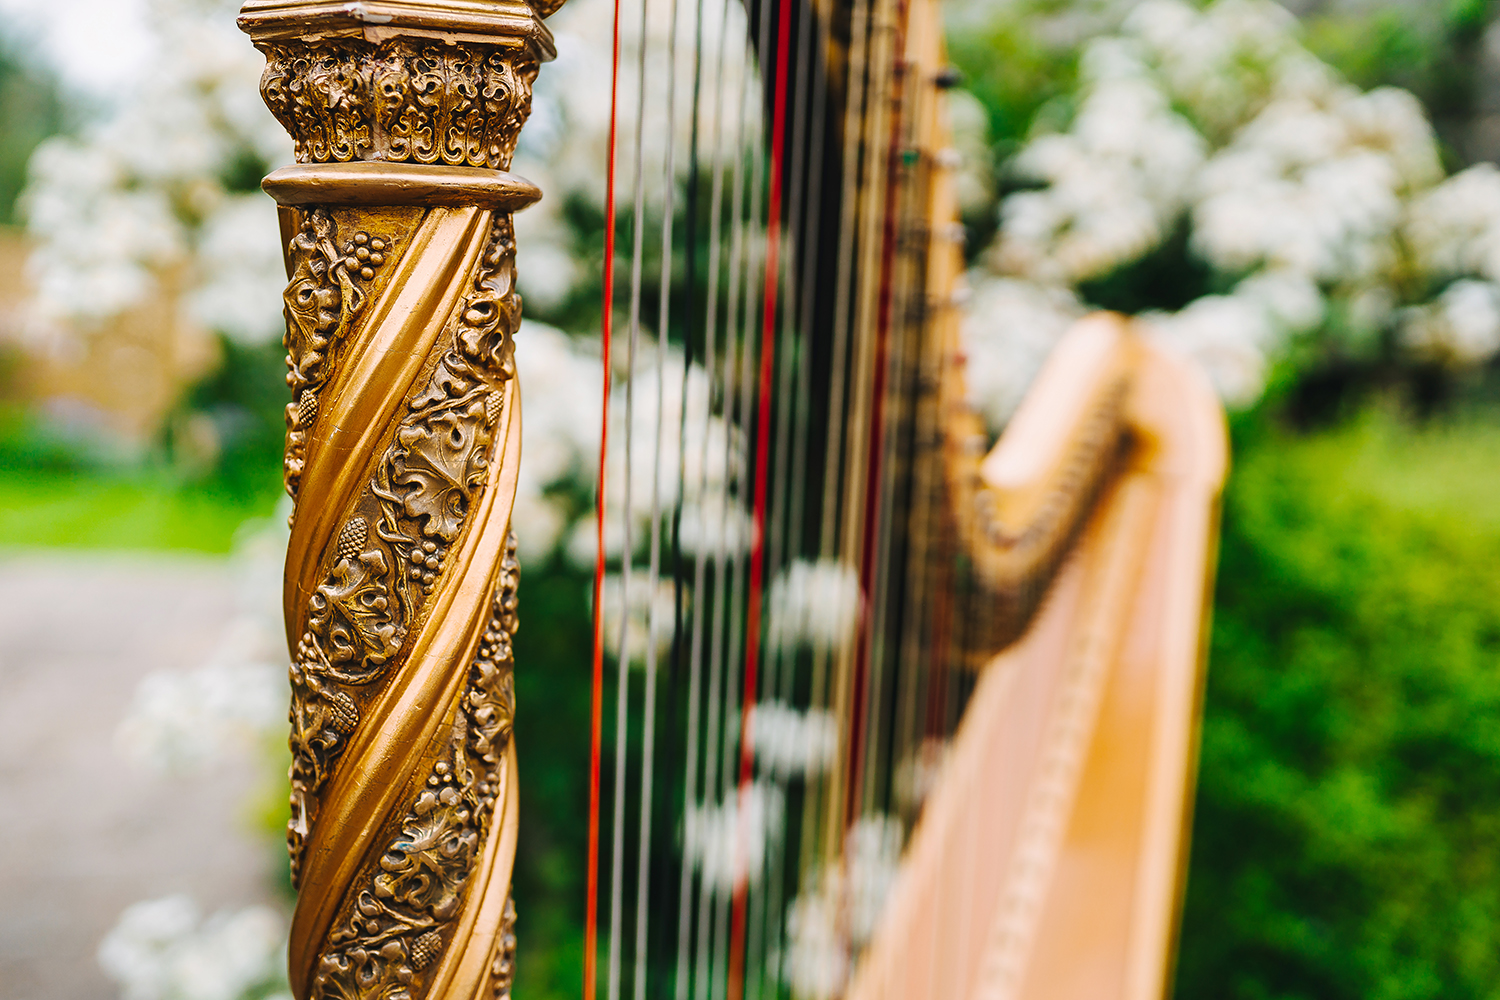 close up image of a harp